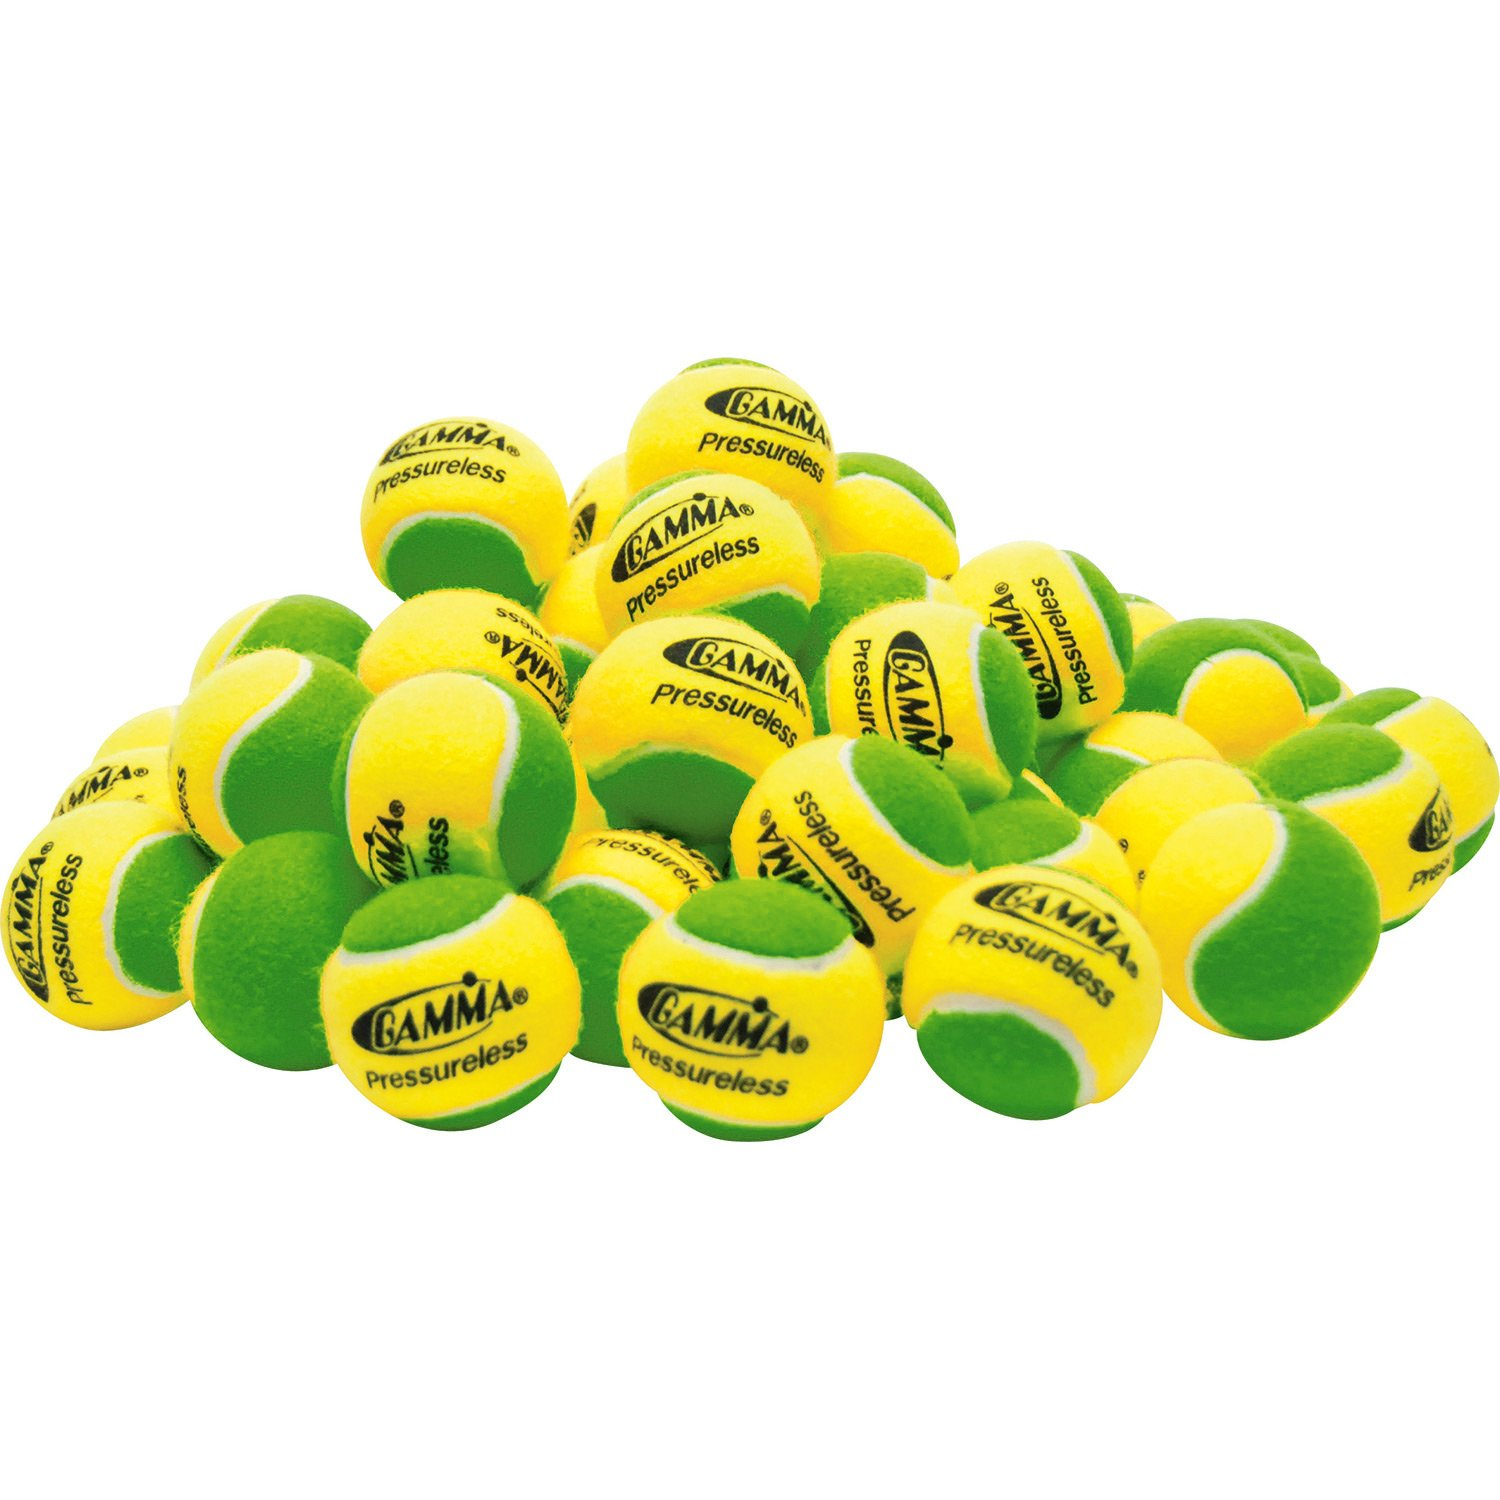 Gamma Sports Pressureless Practice Tennis Balls, Yellow/Green - Pack of 60